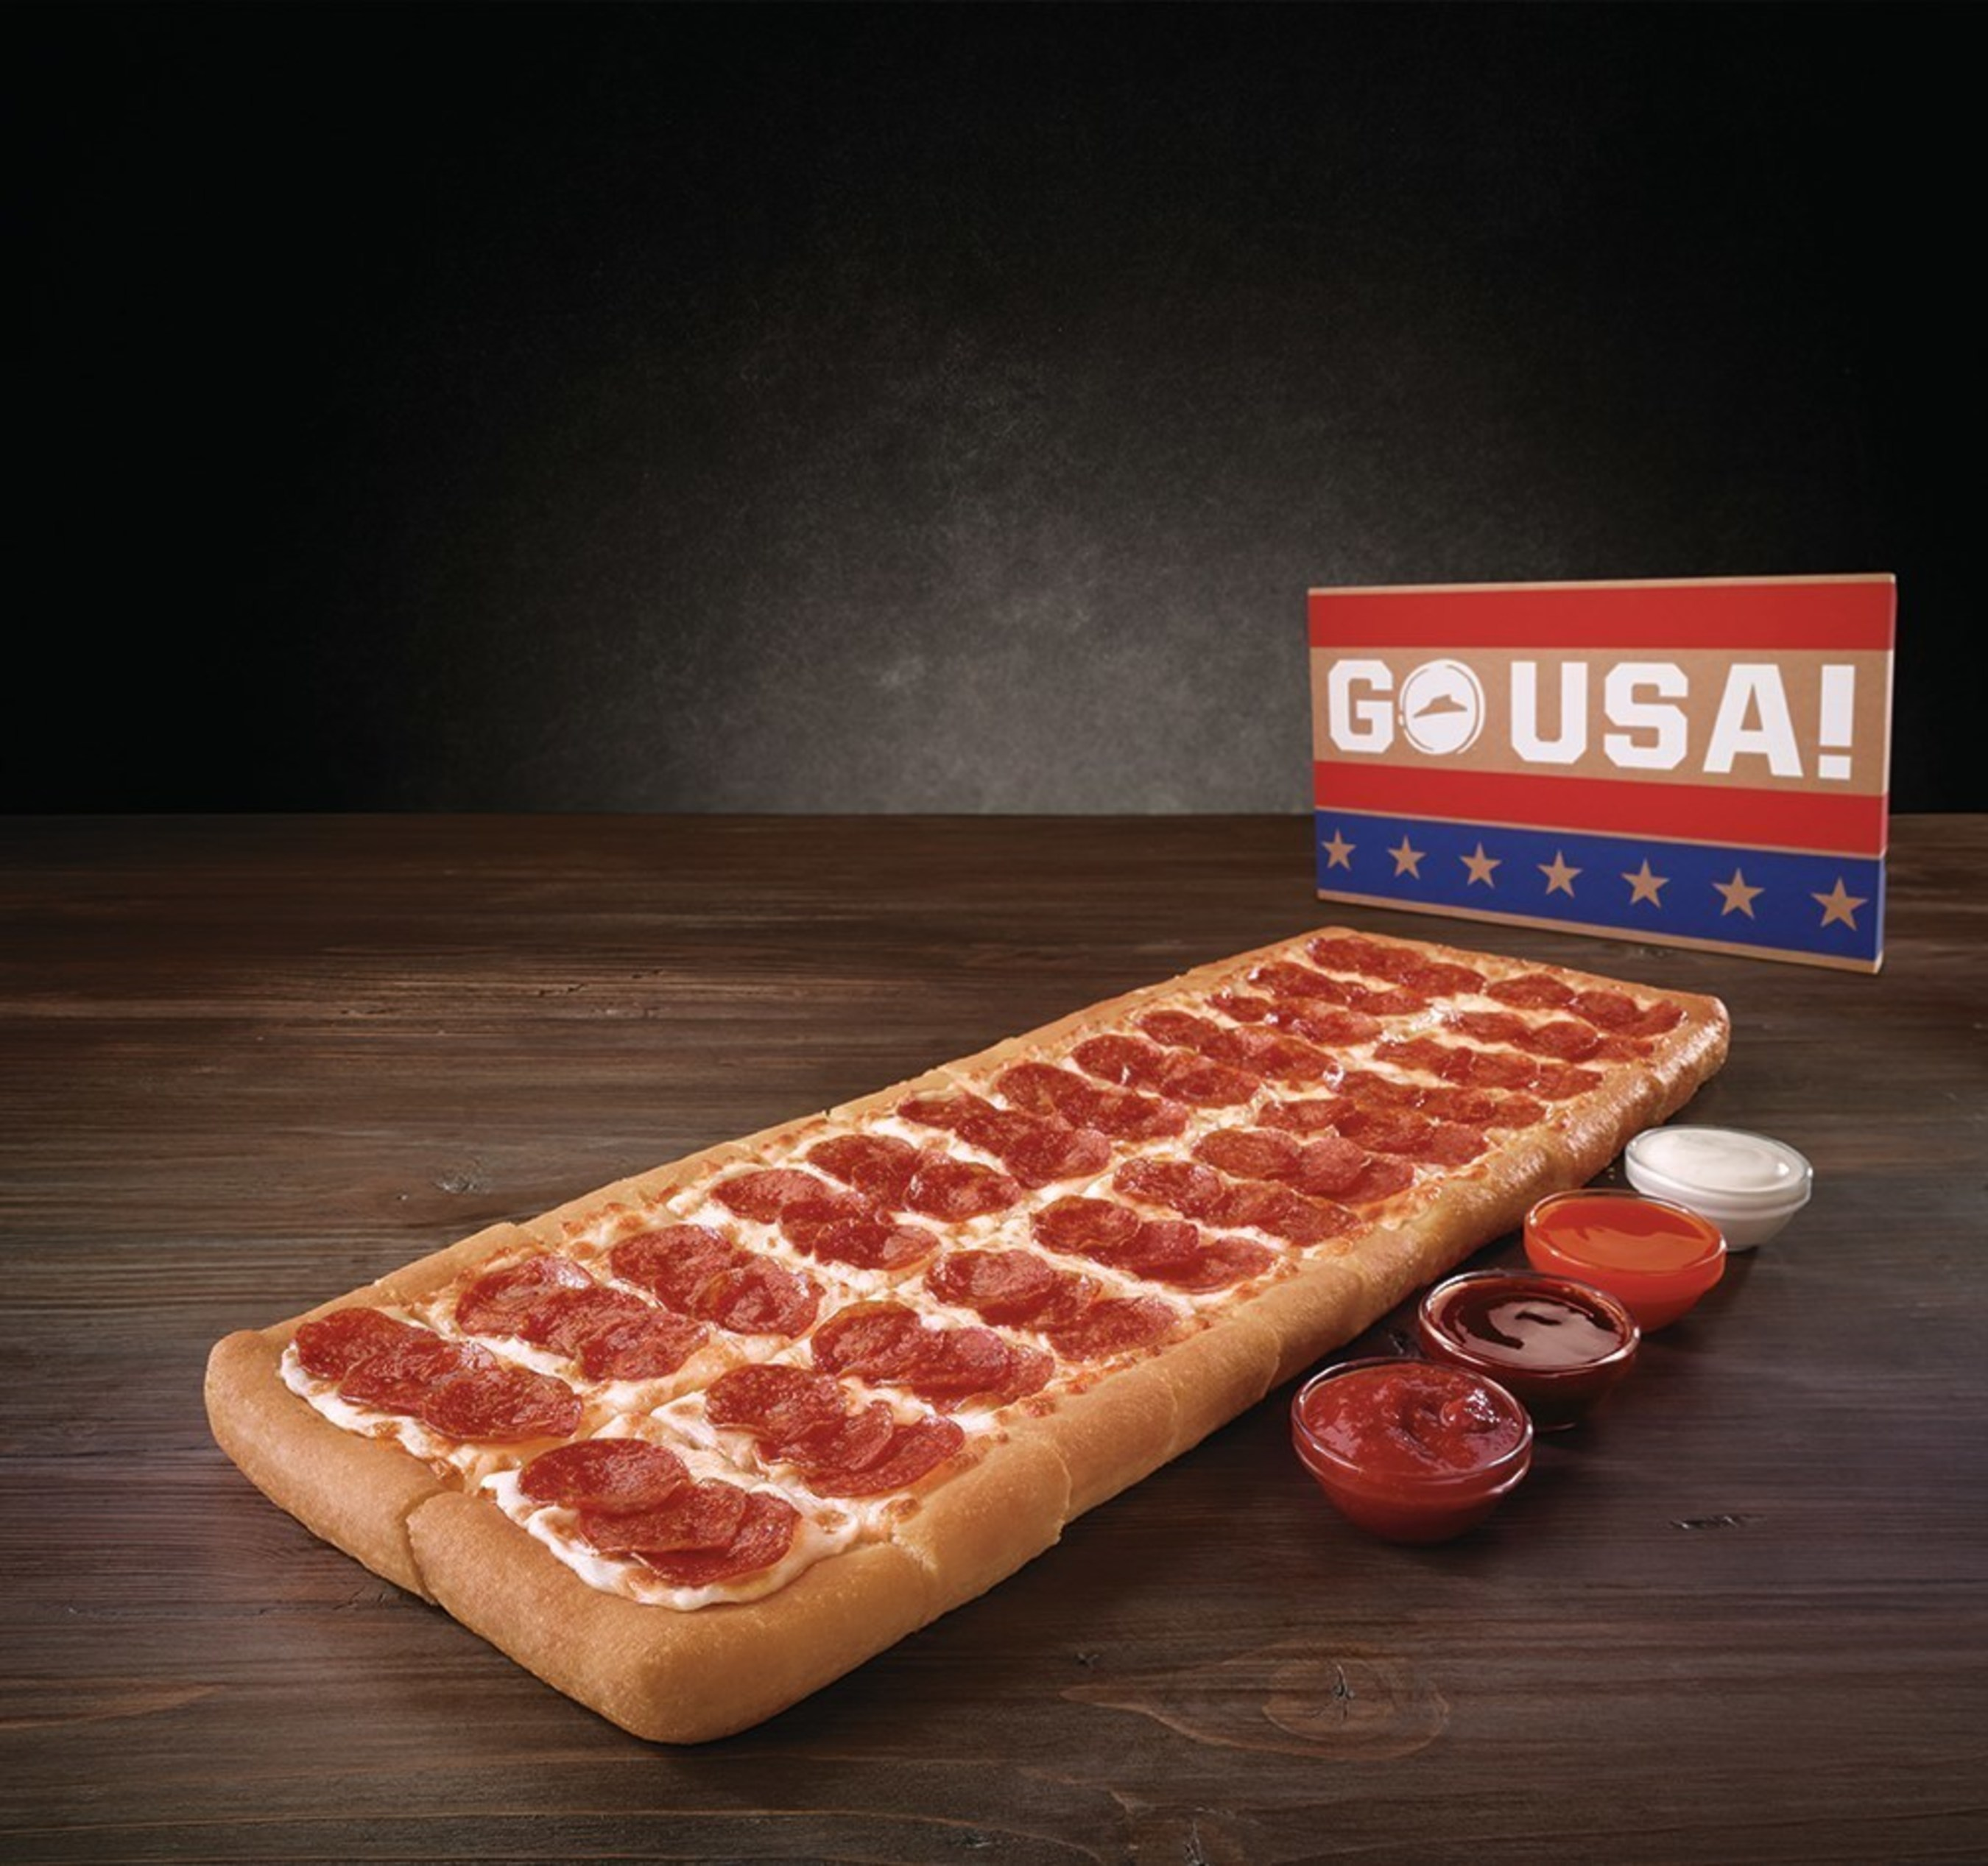 Pizza Hut will please crowds this summer with the Big Flavor Dipper Pizza, a pizza that is nearly two-feet long and features U.S.-inspired sauces - all served in a patriotic box - for only $12.99.